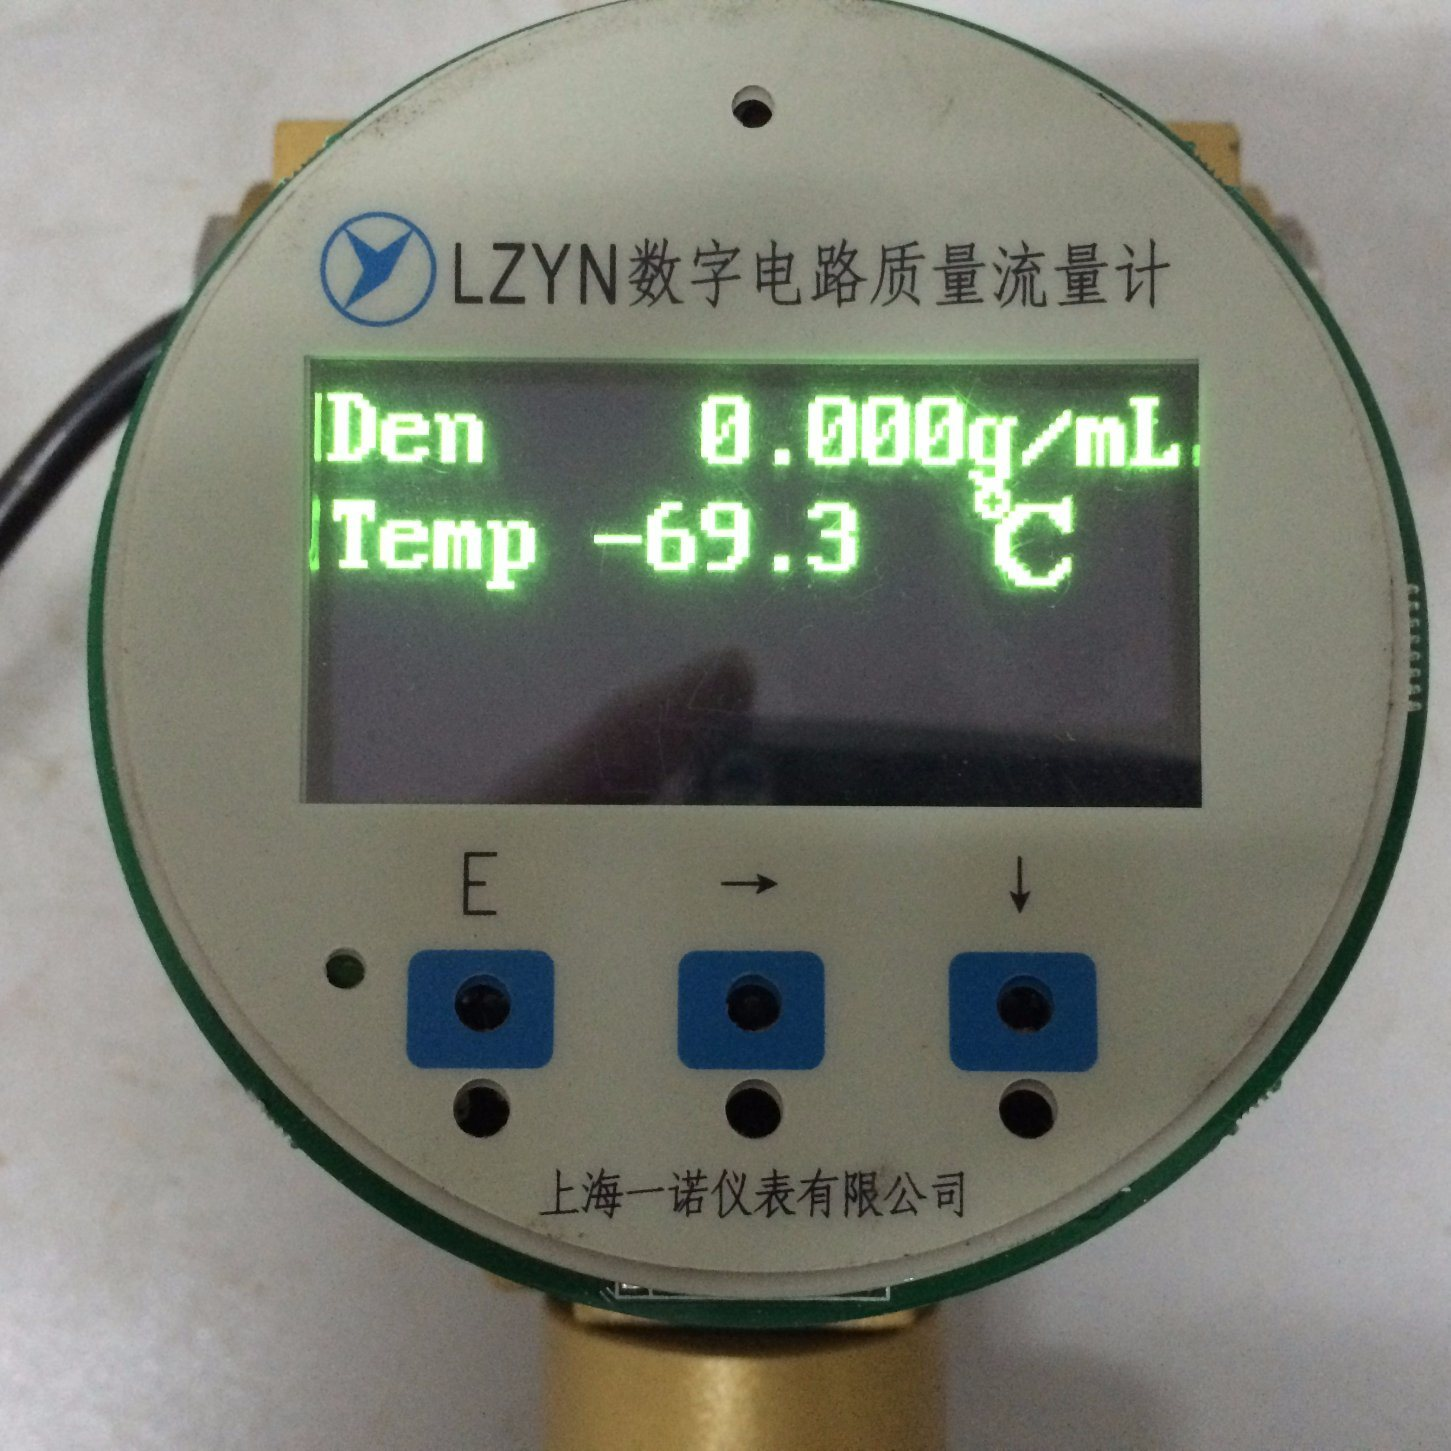 Coriolis Mass Flowmeter with Temperature and Density Displaying